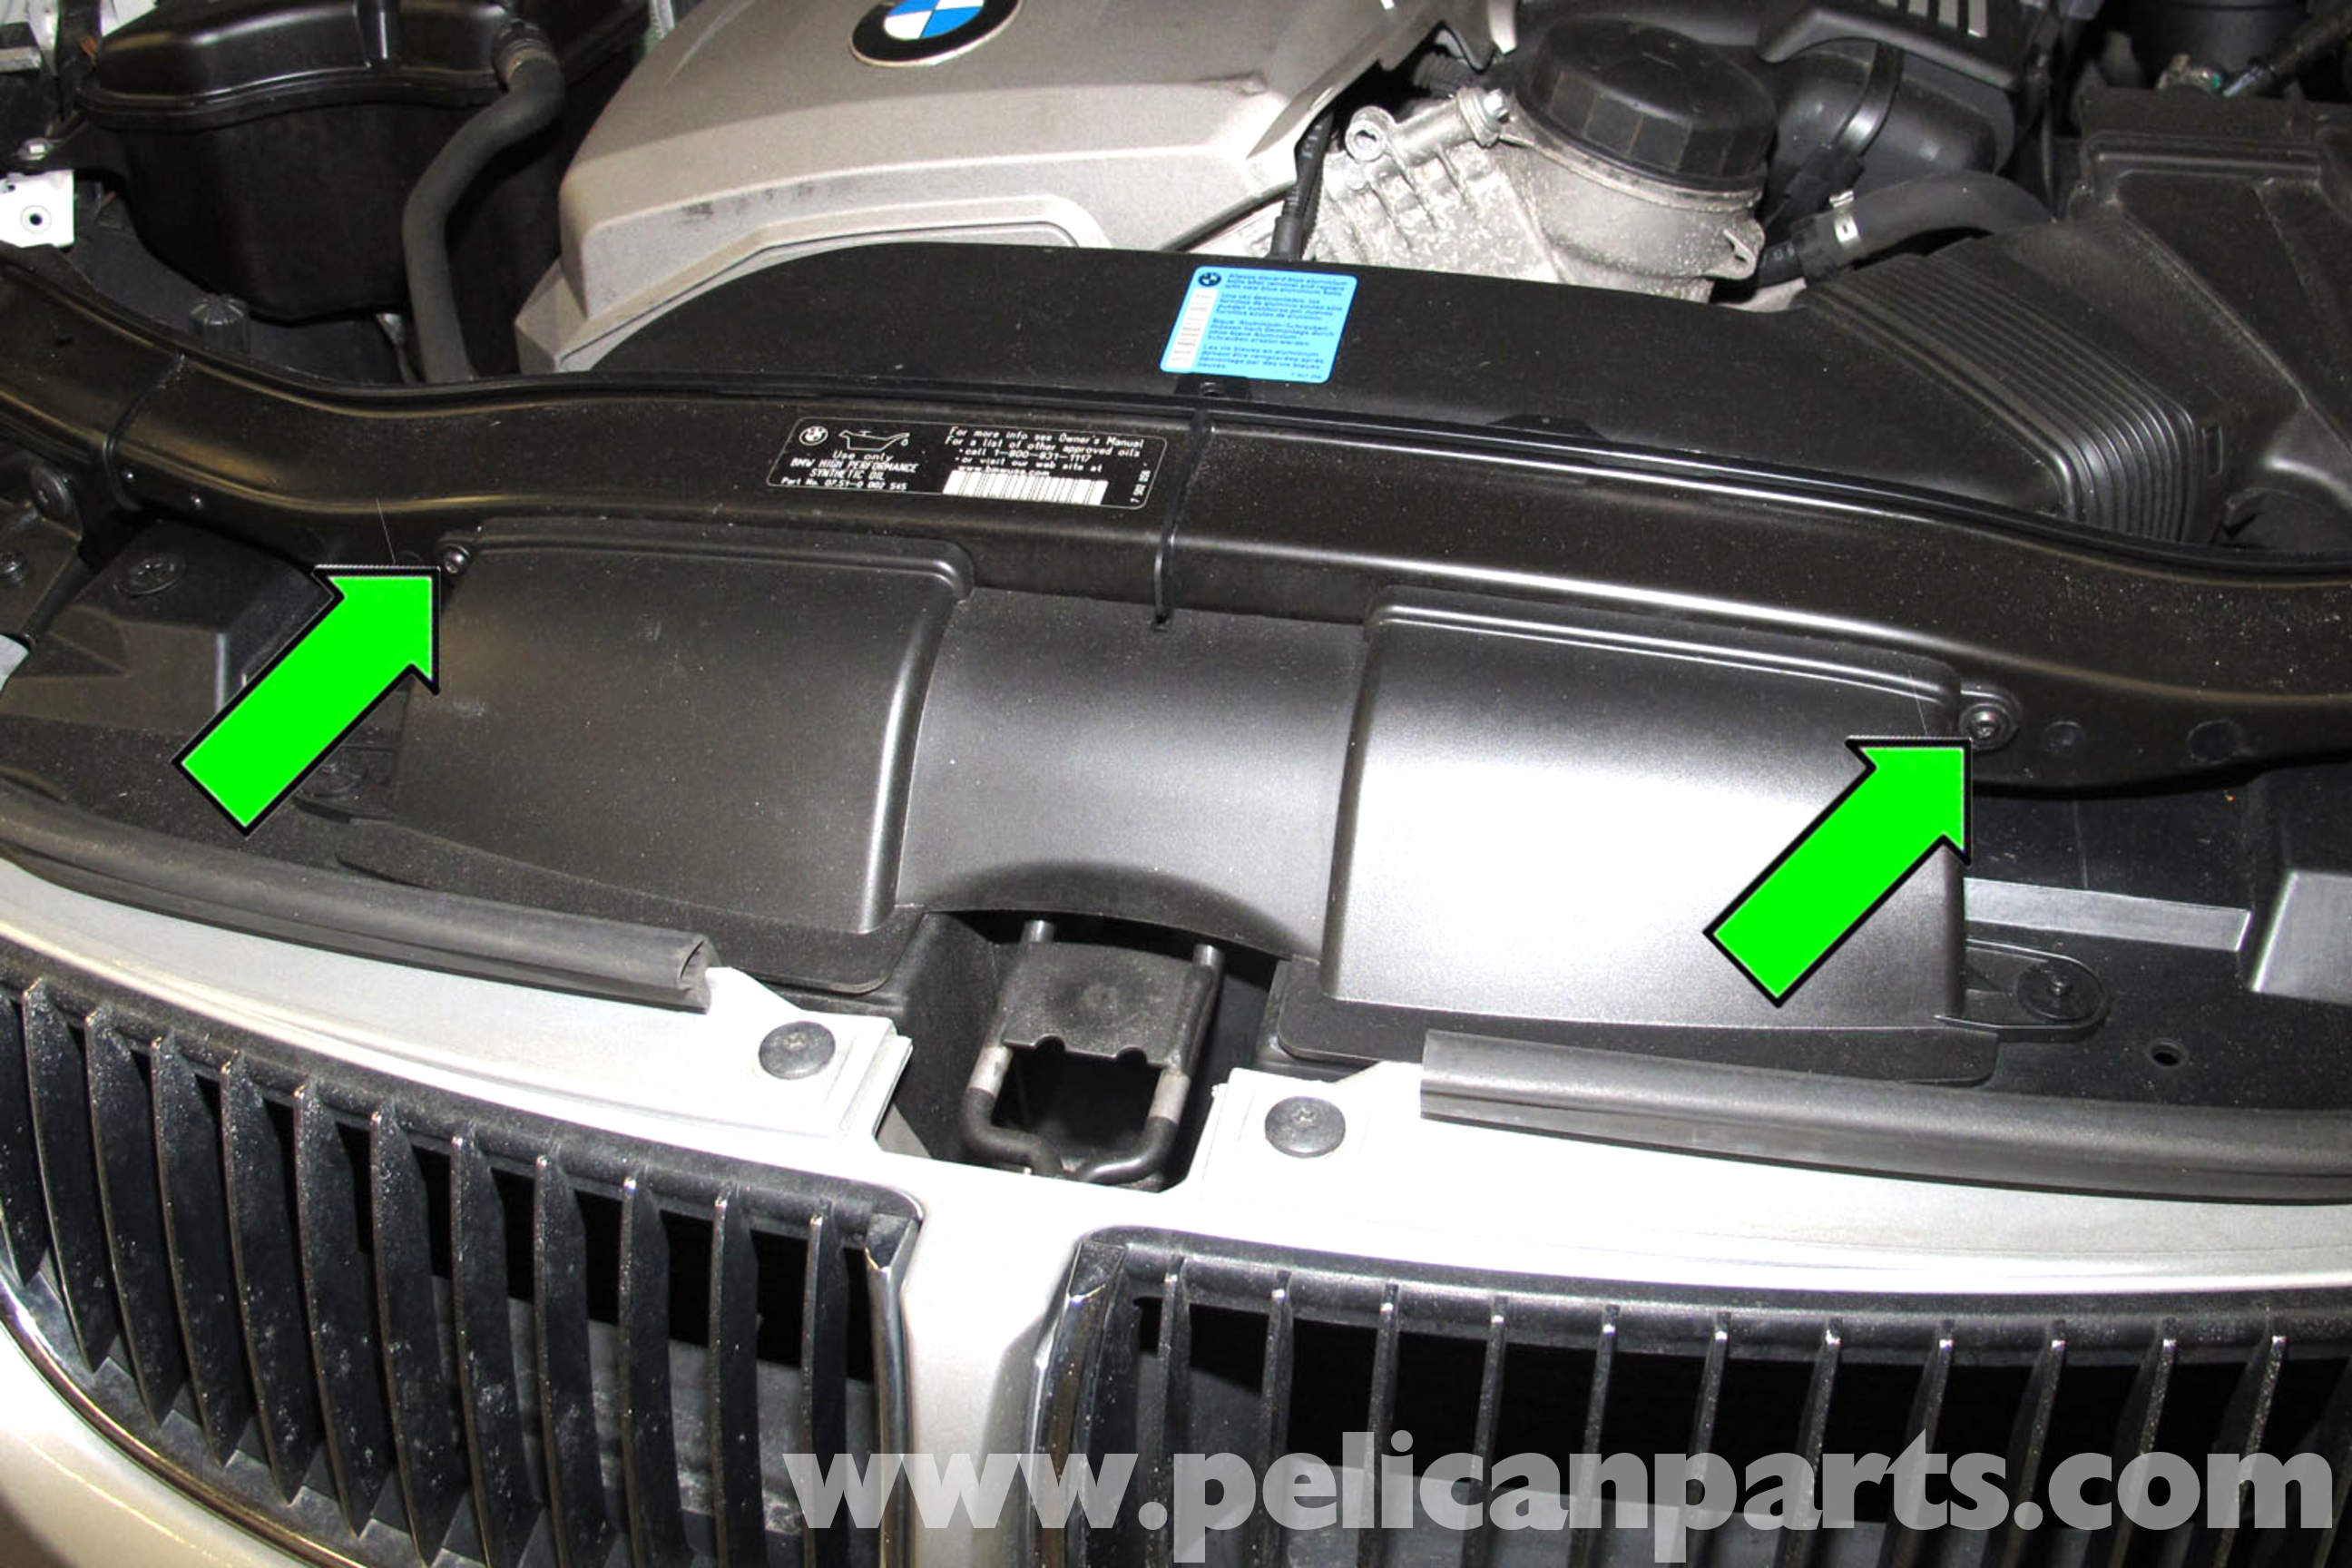 BMW E90 Valve Cover Seal Replacement | E91, E92, E93 ...